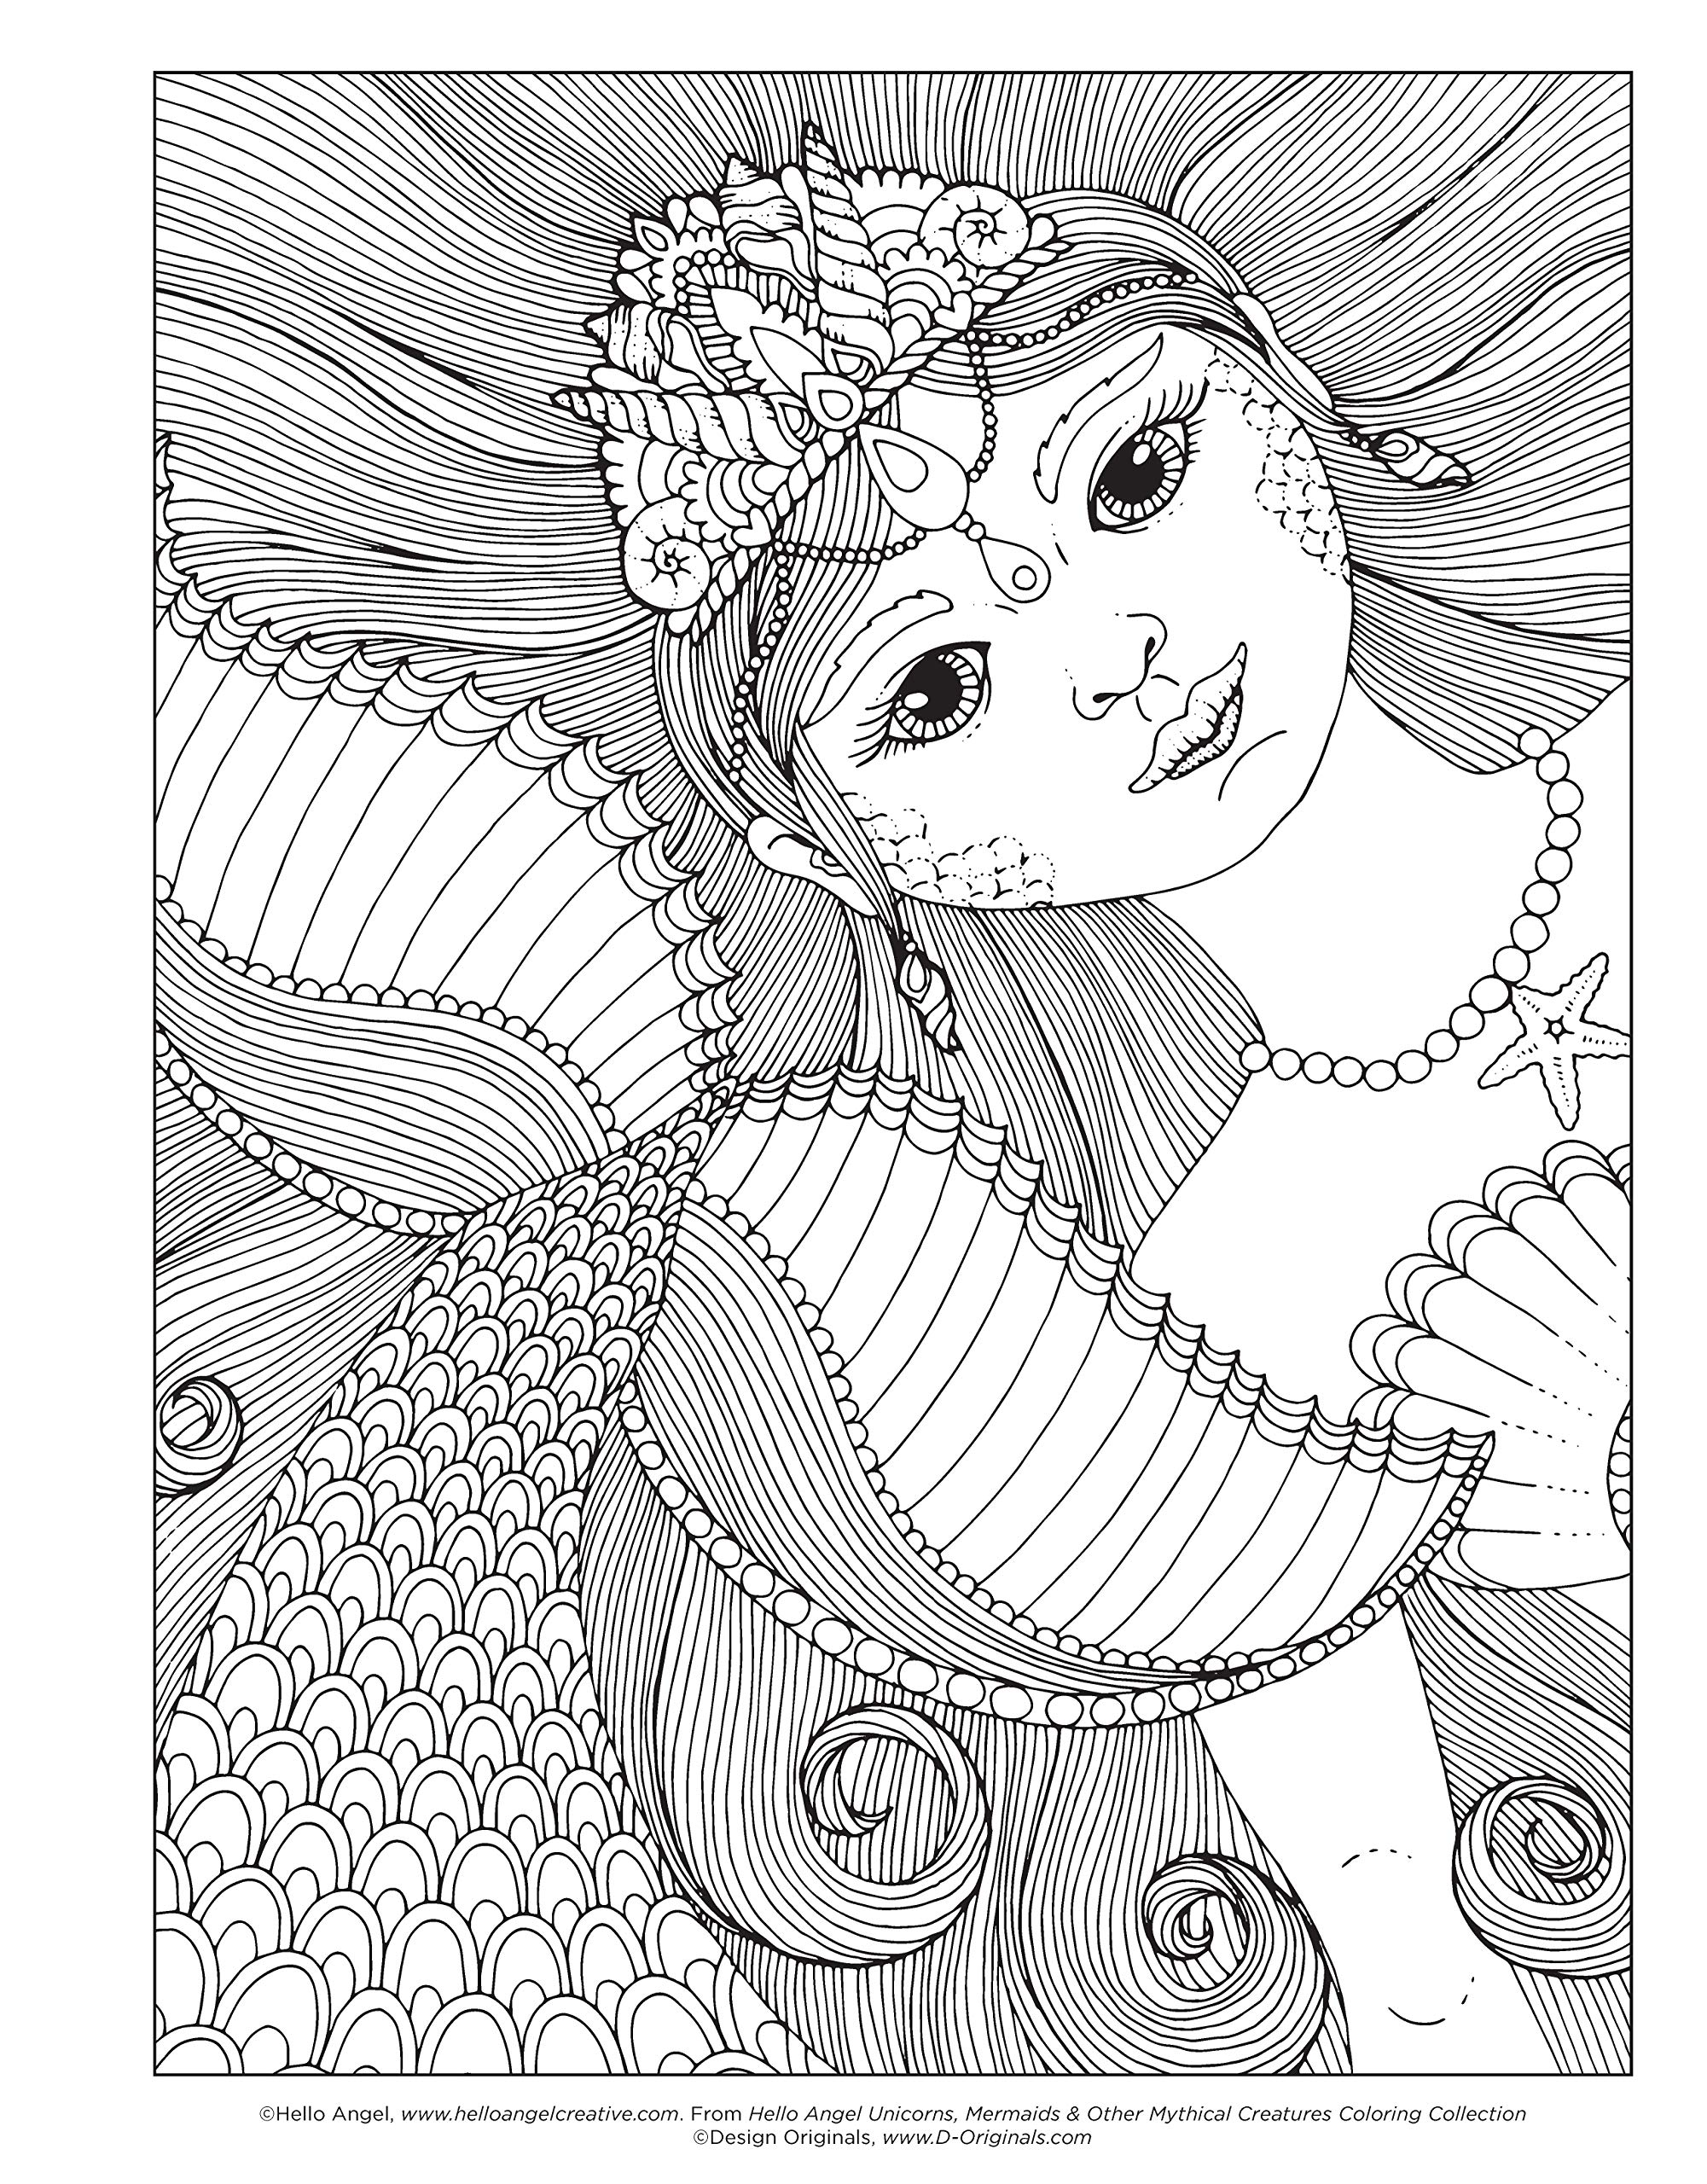 Amazon Com Hello Angel Unicorns Mermaids Other Mythical Creatures Coloring Collection Design Originals 32 Beautiful Designs Including Fairies Rainbows A Pegasus More Plus A 16 Page Artist S Guide 9781497203211 Angelea Van Dam